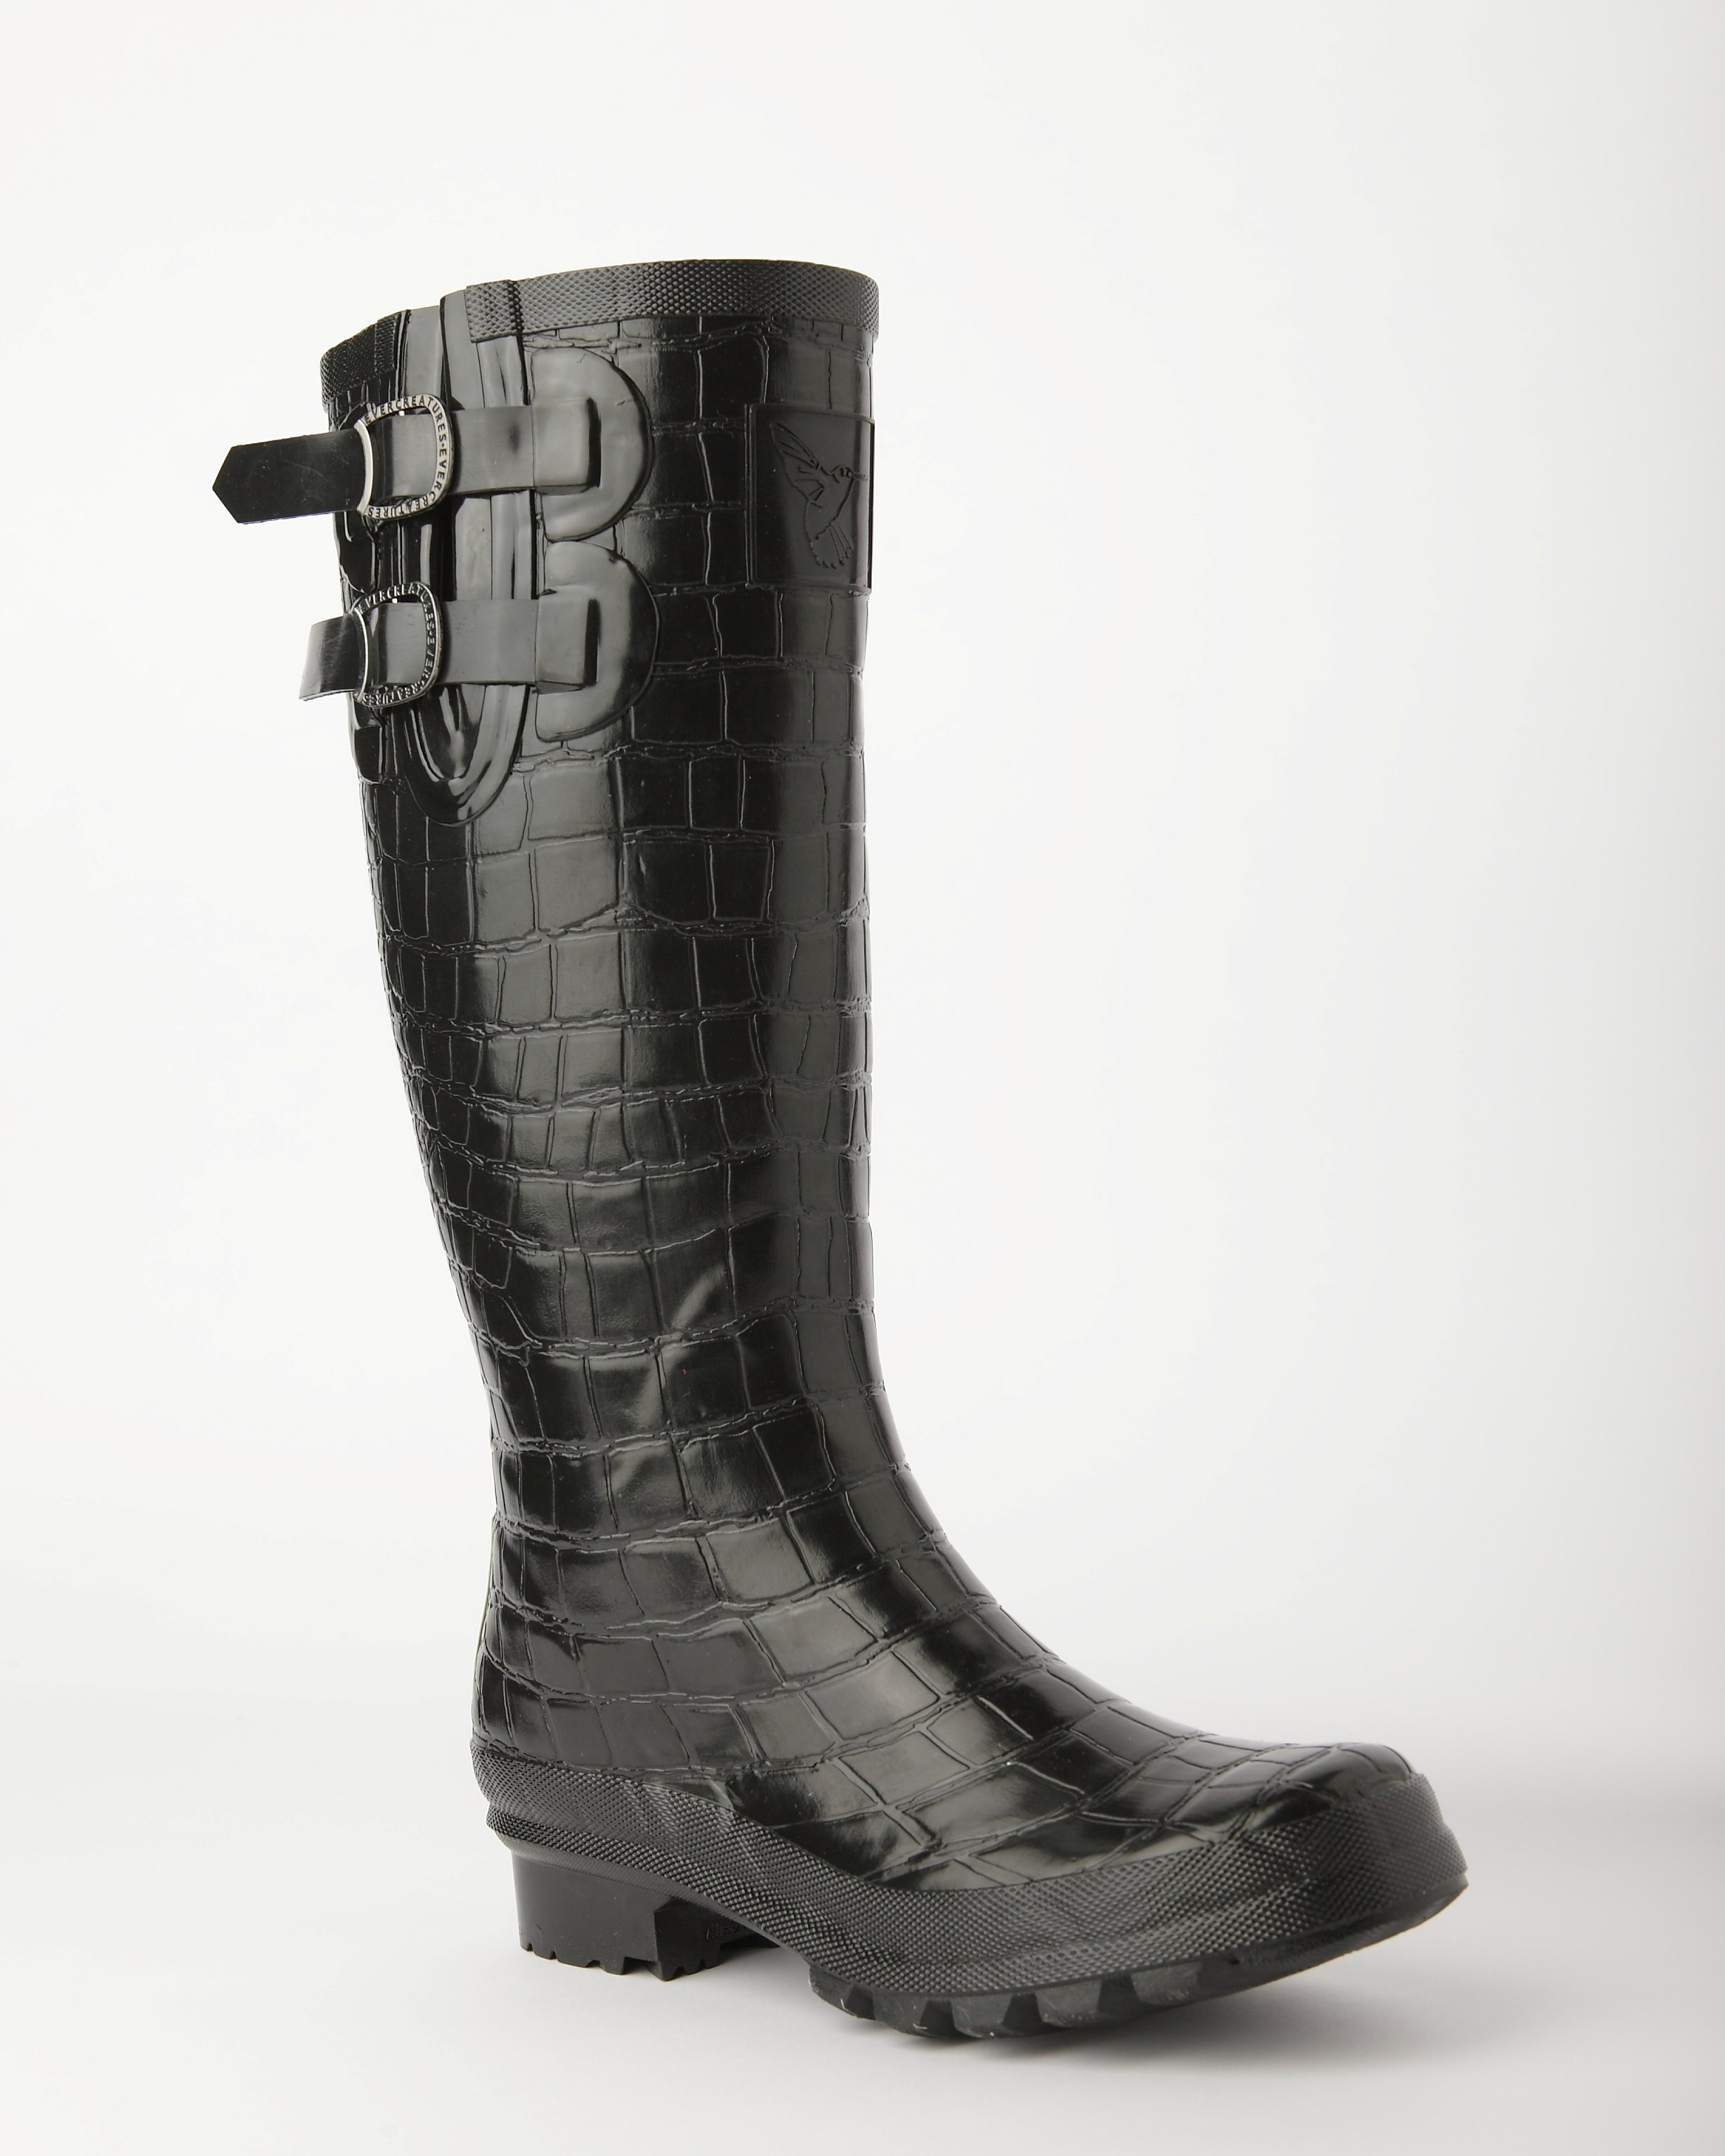 EVERCREATURES NILOTICUS WELLINGTON BLACK CROC WELLINGTON NILOTICUS Stiefel 8fbc1c